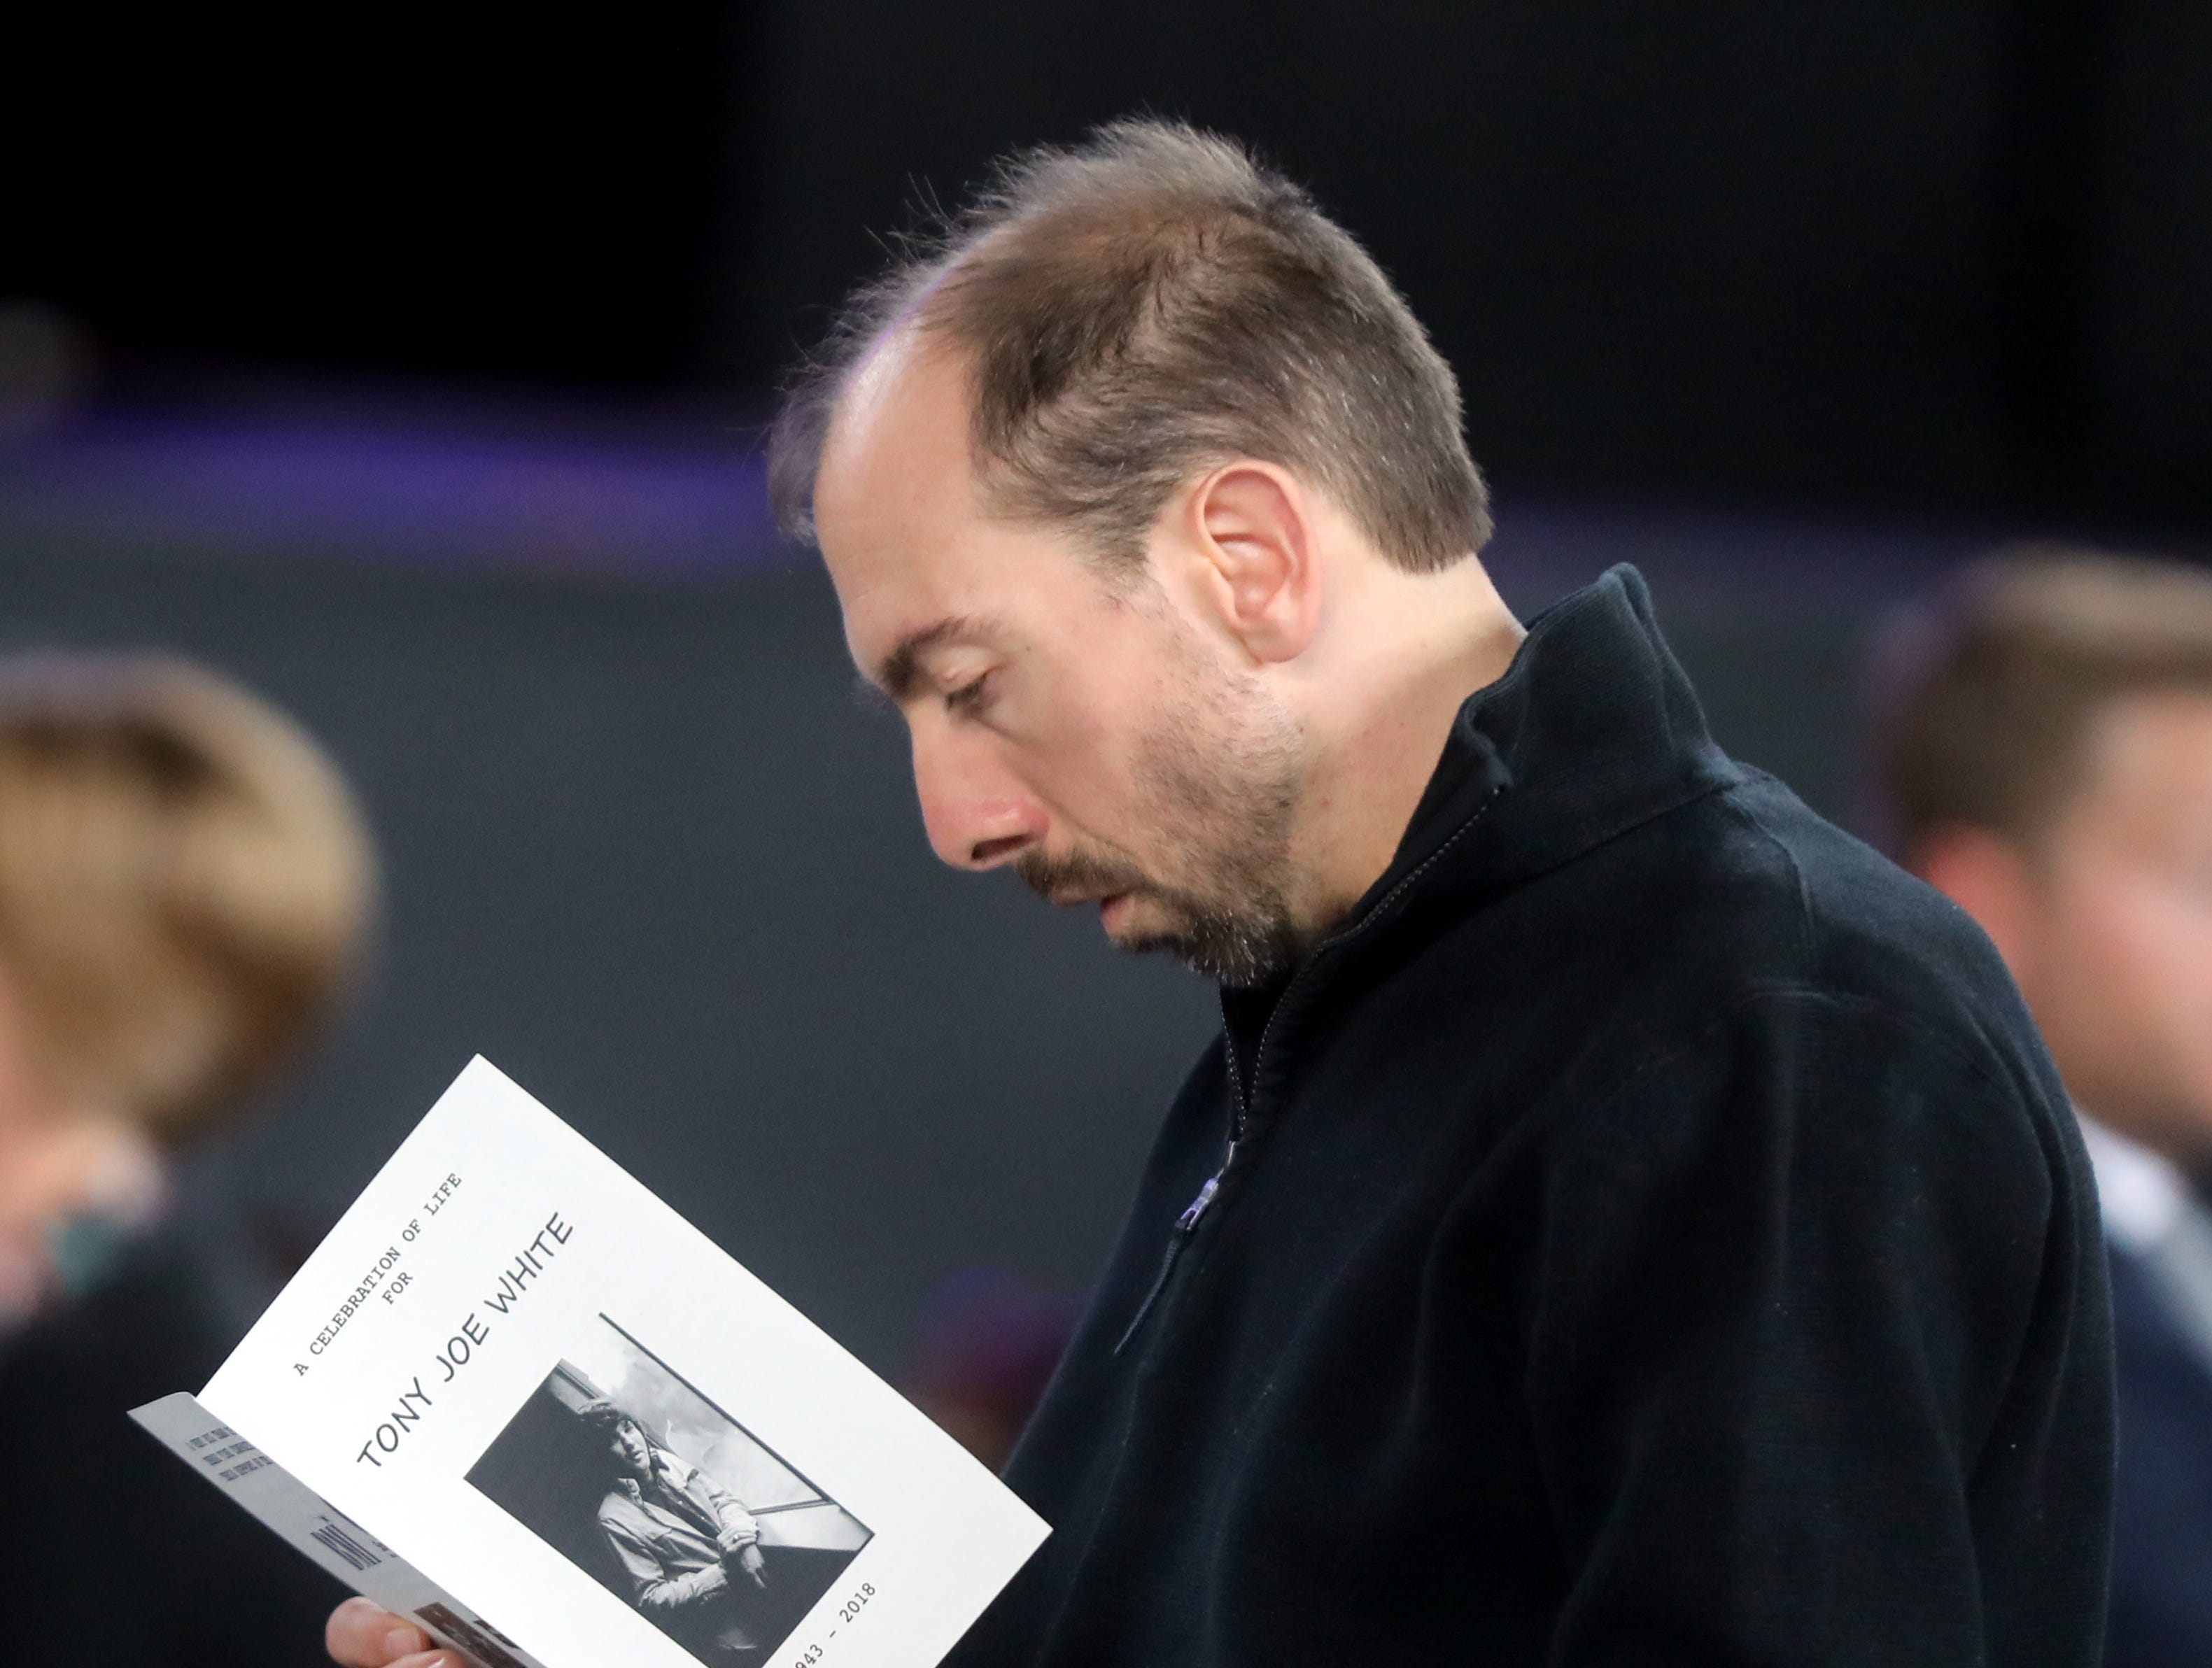 Nathan Collie reads the program during a Celebration of Life service held for singer-songwriter Tony Joe White at Marathon Music Works Wednesday, October 31, 2018.